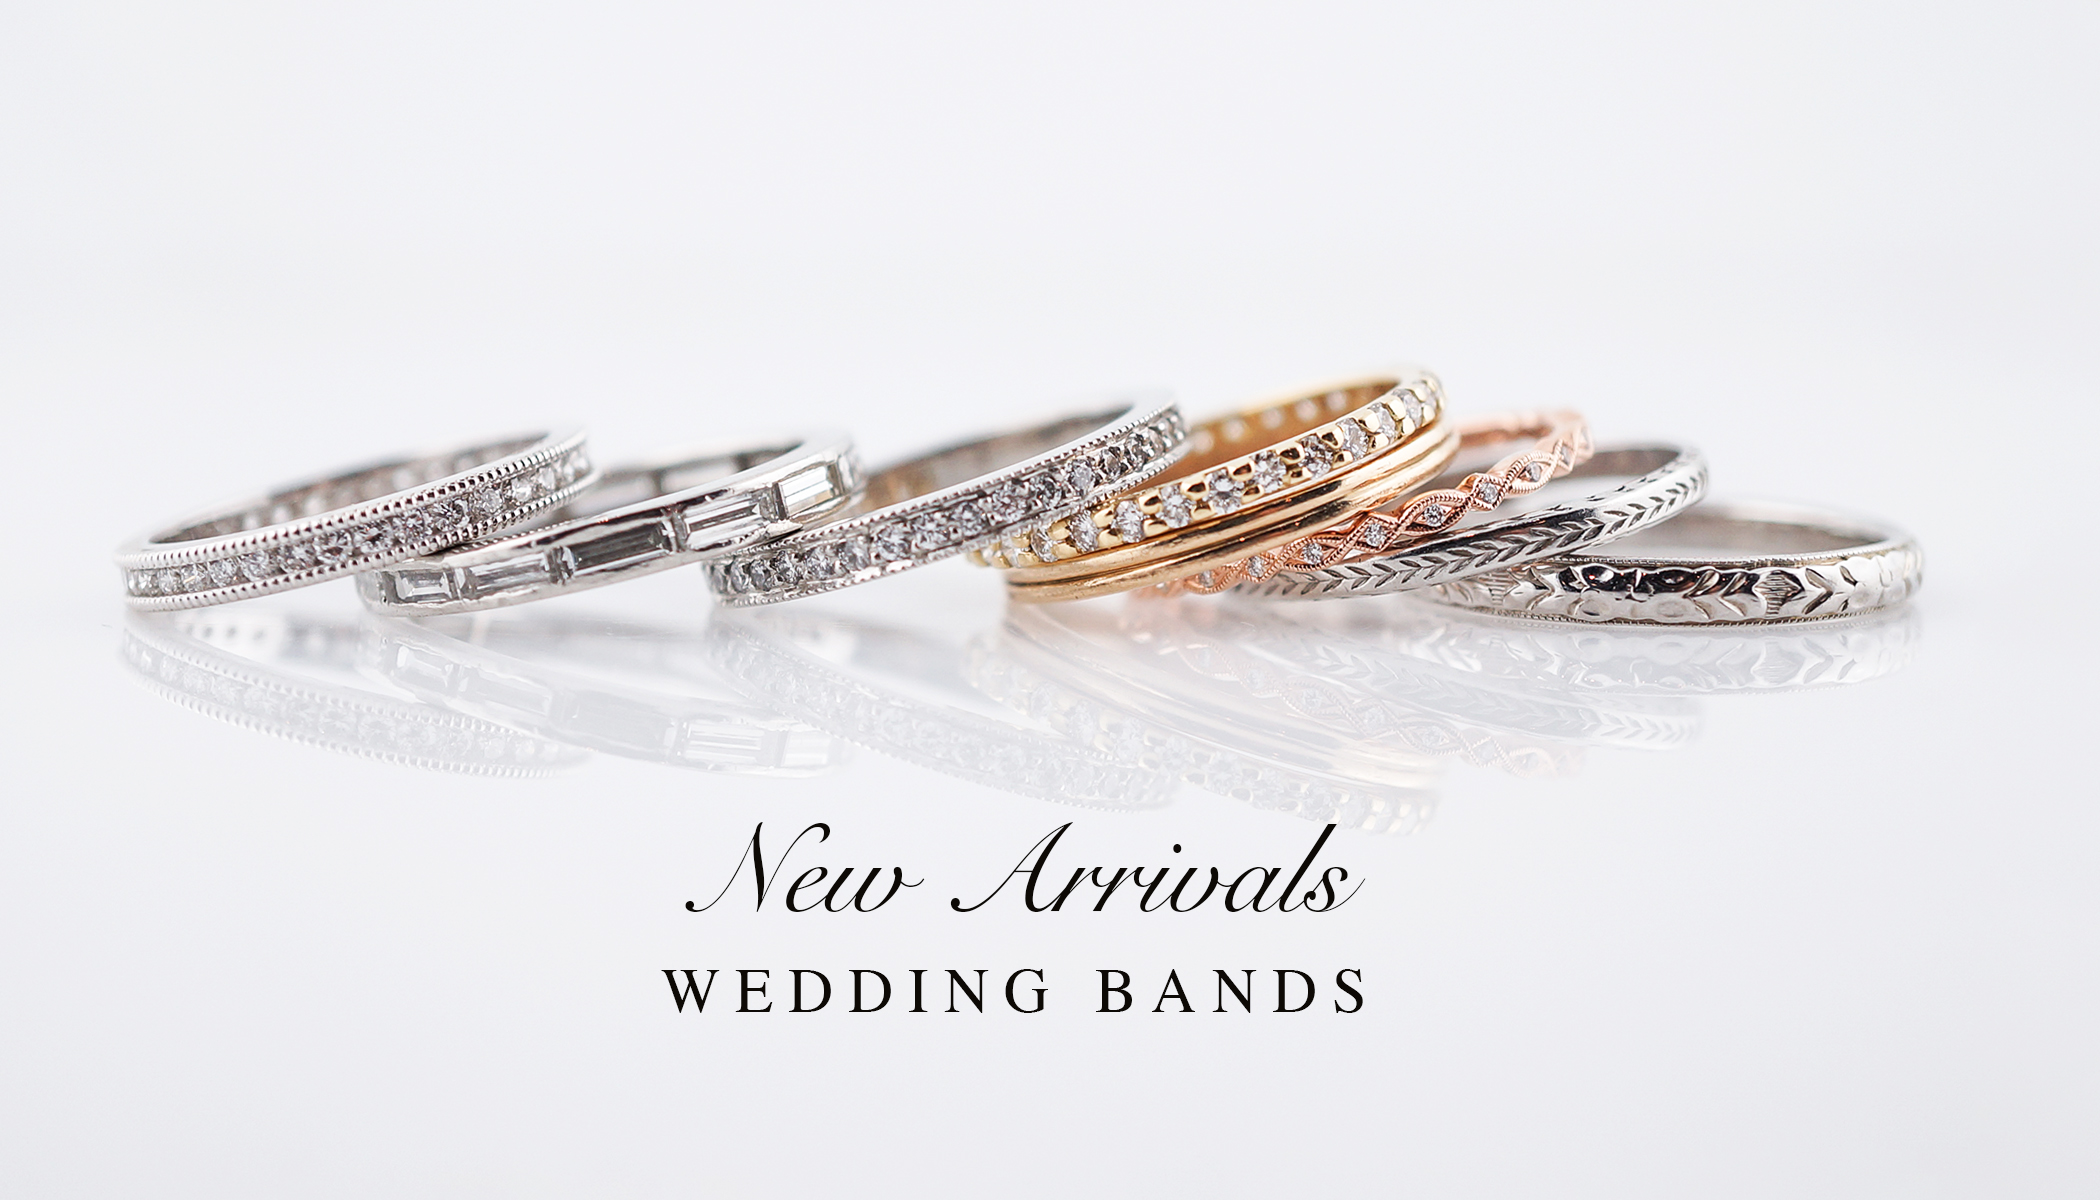 WeddingBands_DiamondWeddingBand_YellowGoldWeddingBand_PlatinumWeddingBand_WhiteGoldWeddingBand_EngravedWeddingBand_FiligreeJewelers_NorthLoop_Minneapolis_NewArrivals